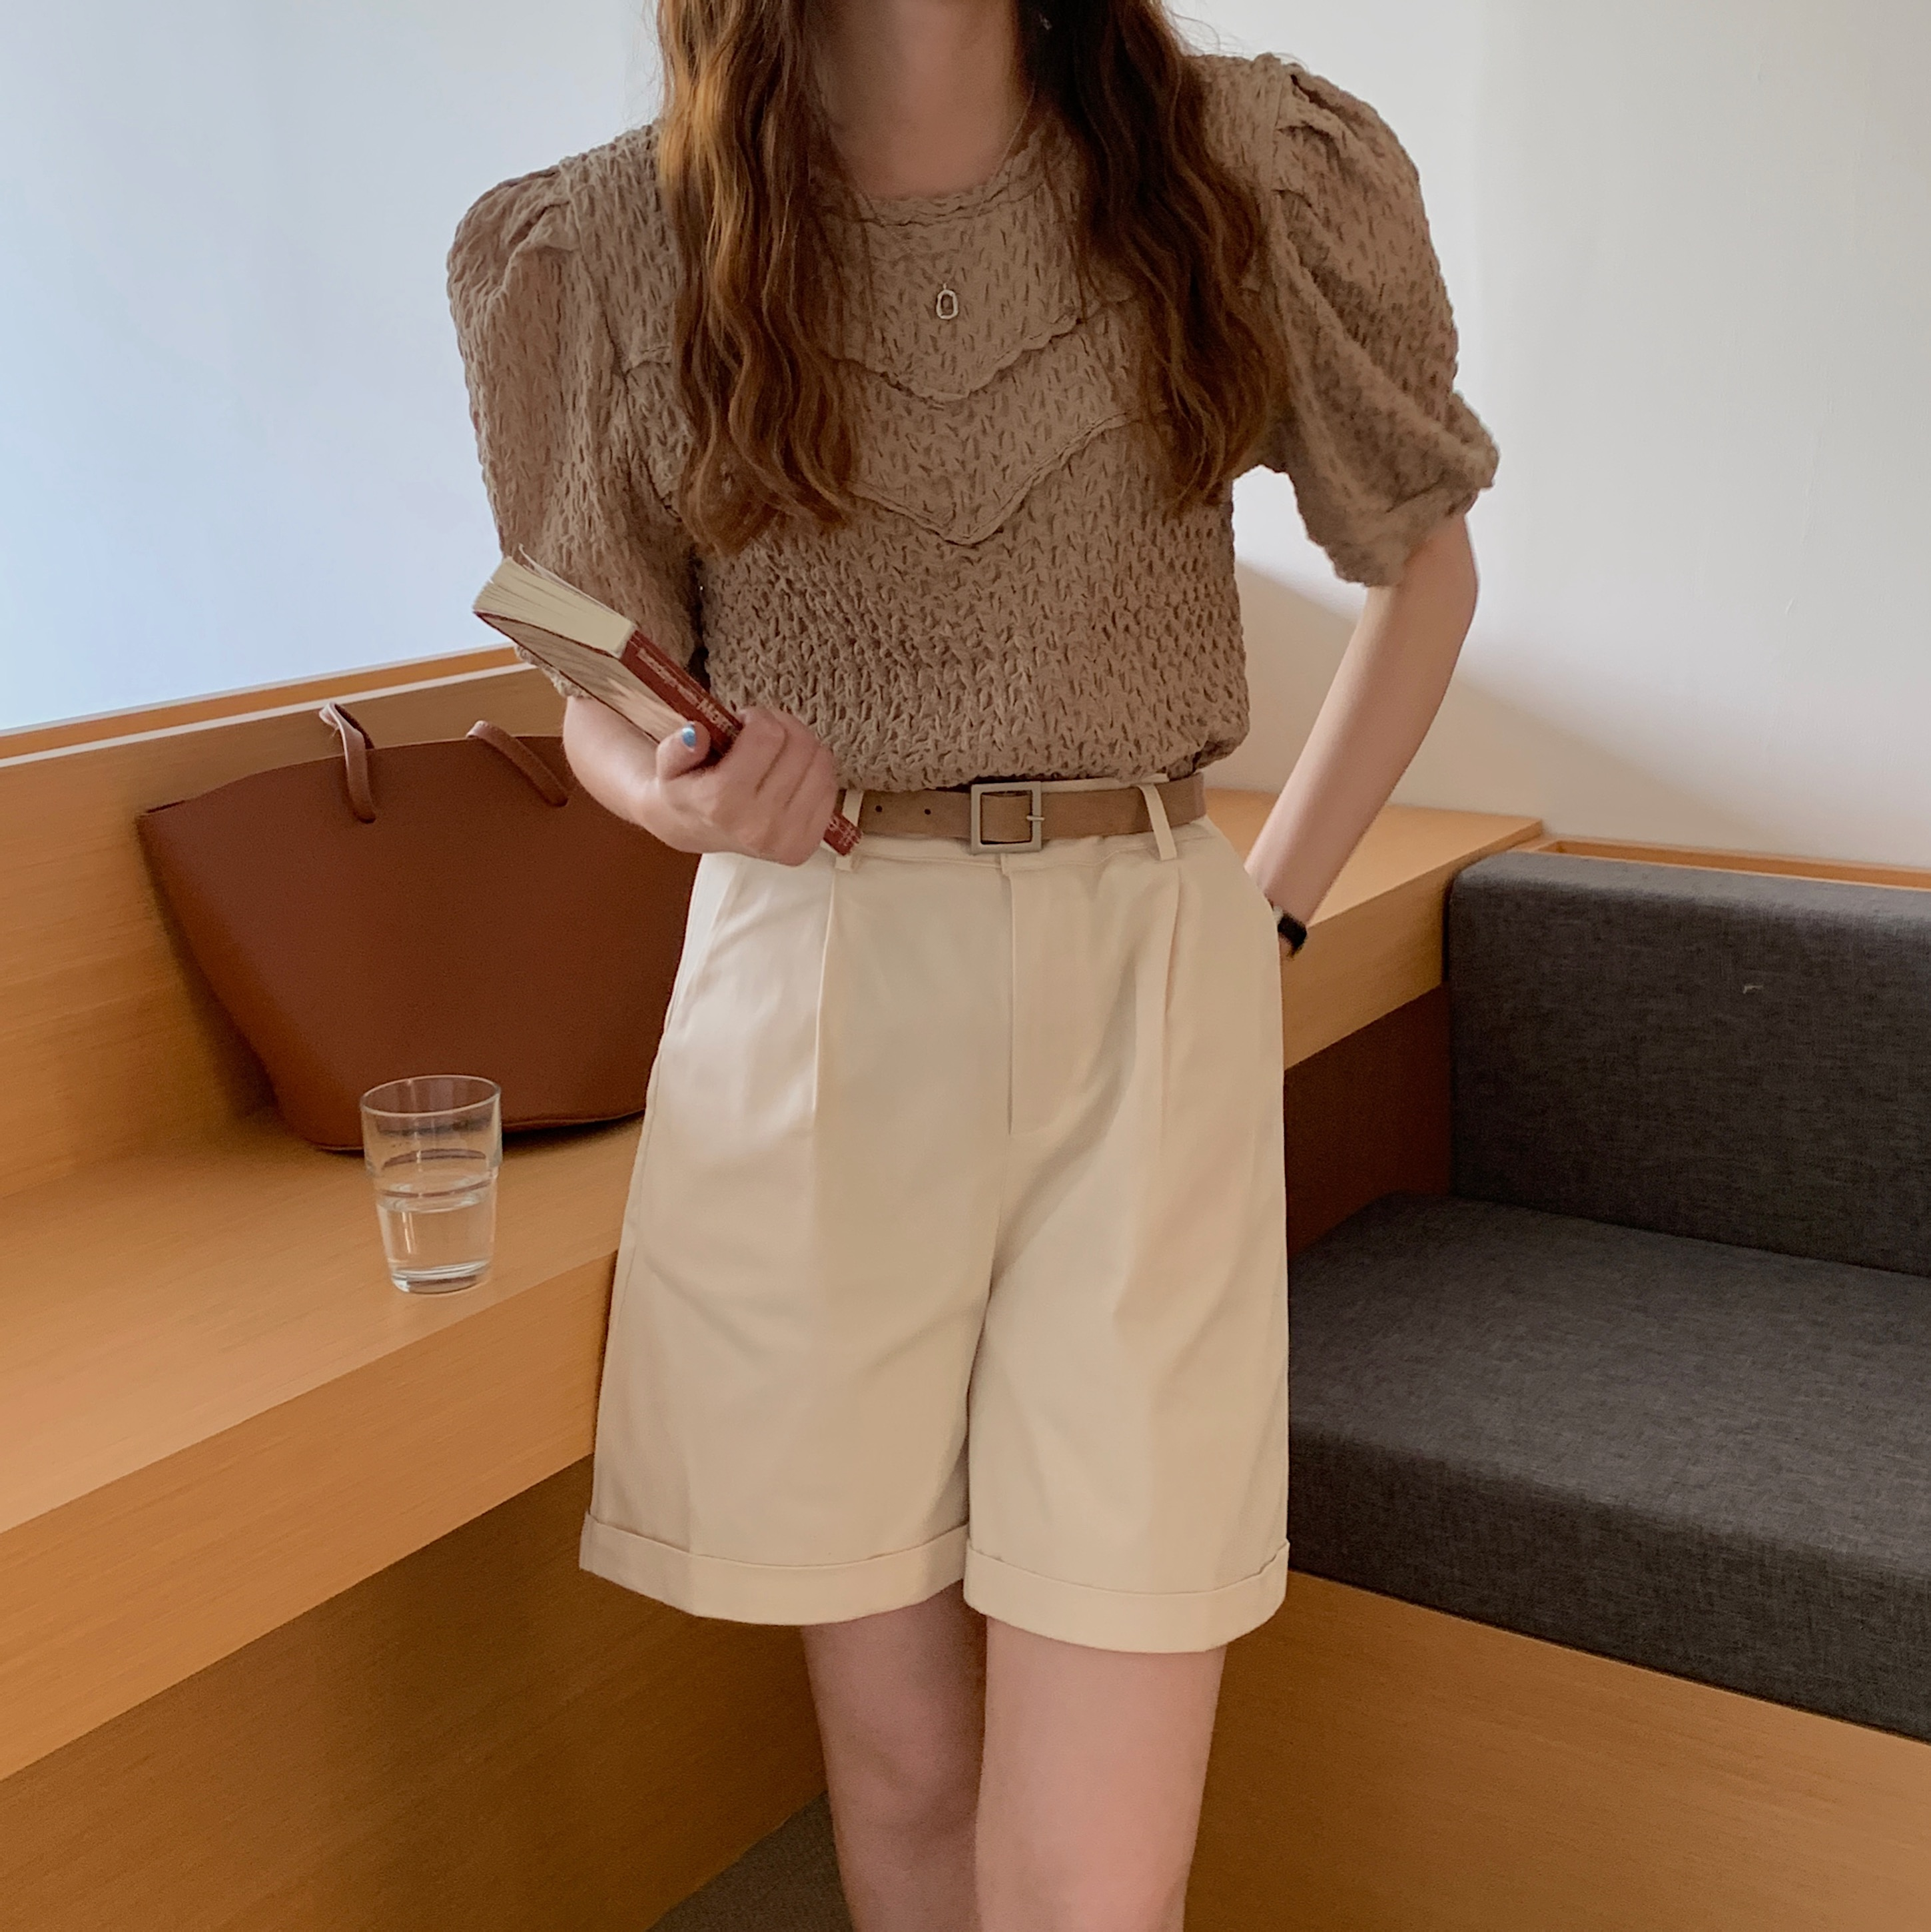 H2534f9cb82304e4cb8ff9532aa2efed2K - Summer O-Neck Short Sleeves Pleated Blouse